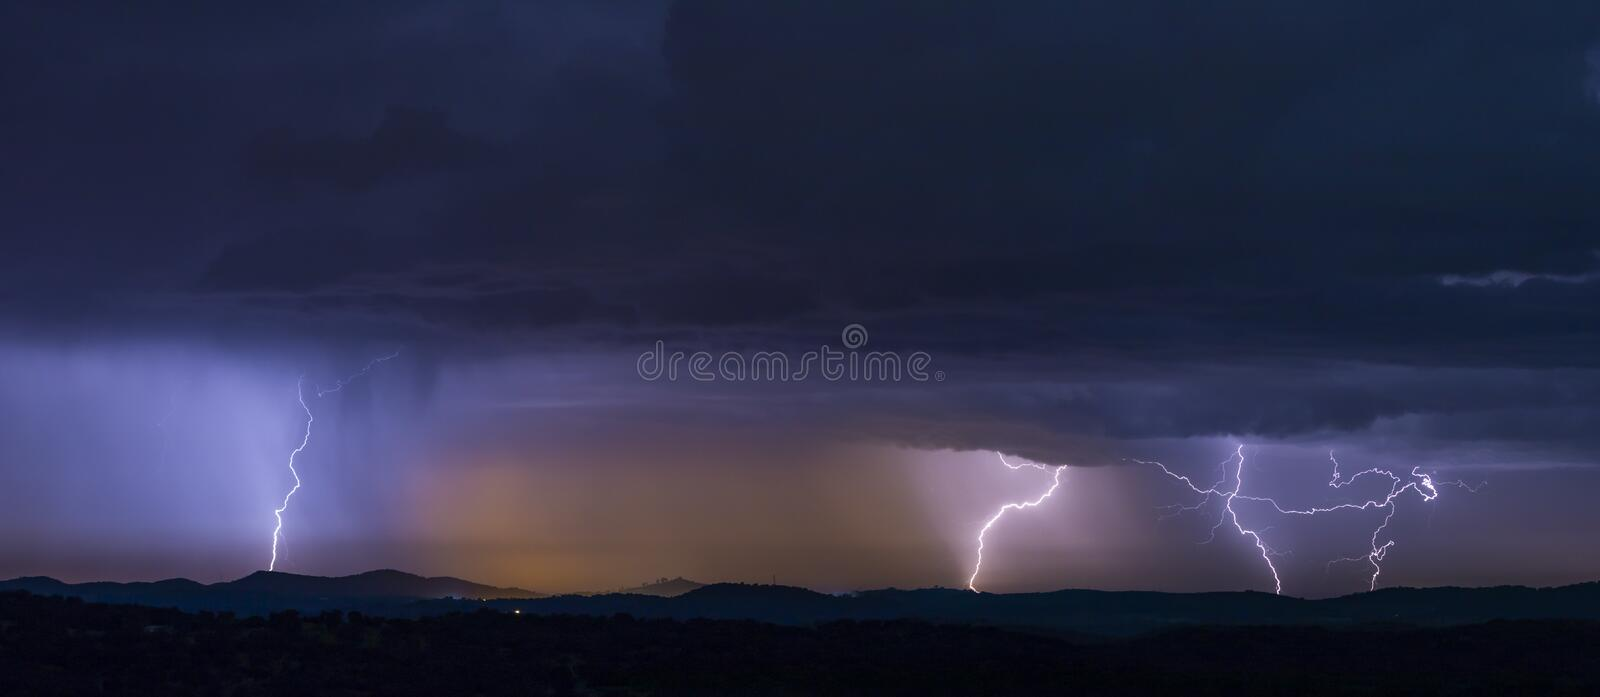 Powerful thunderstorm over hills at night. Breathtaking view of powerful thunderstorm over hills in dark evening stock photo